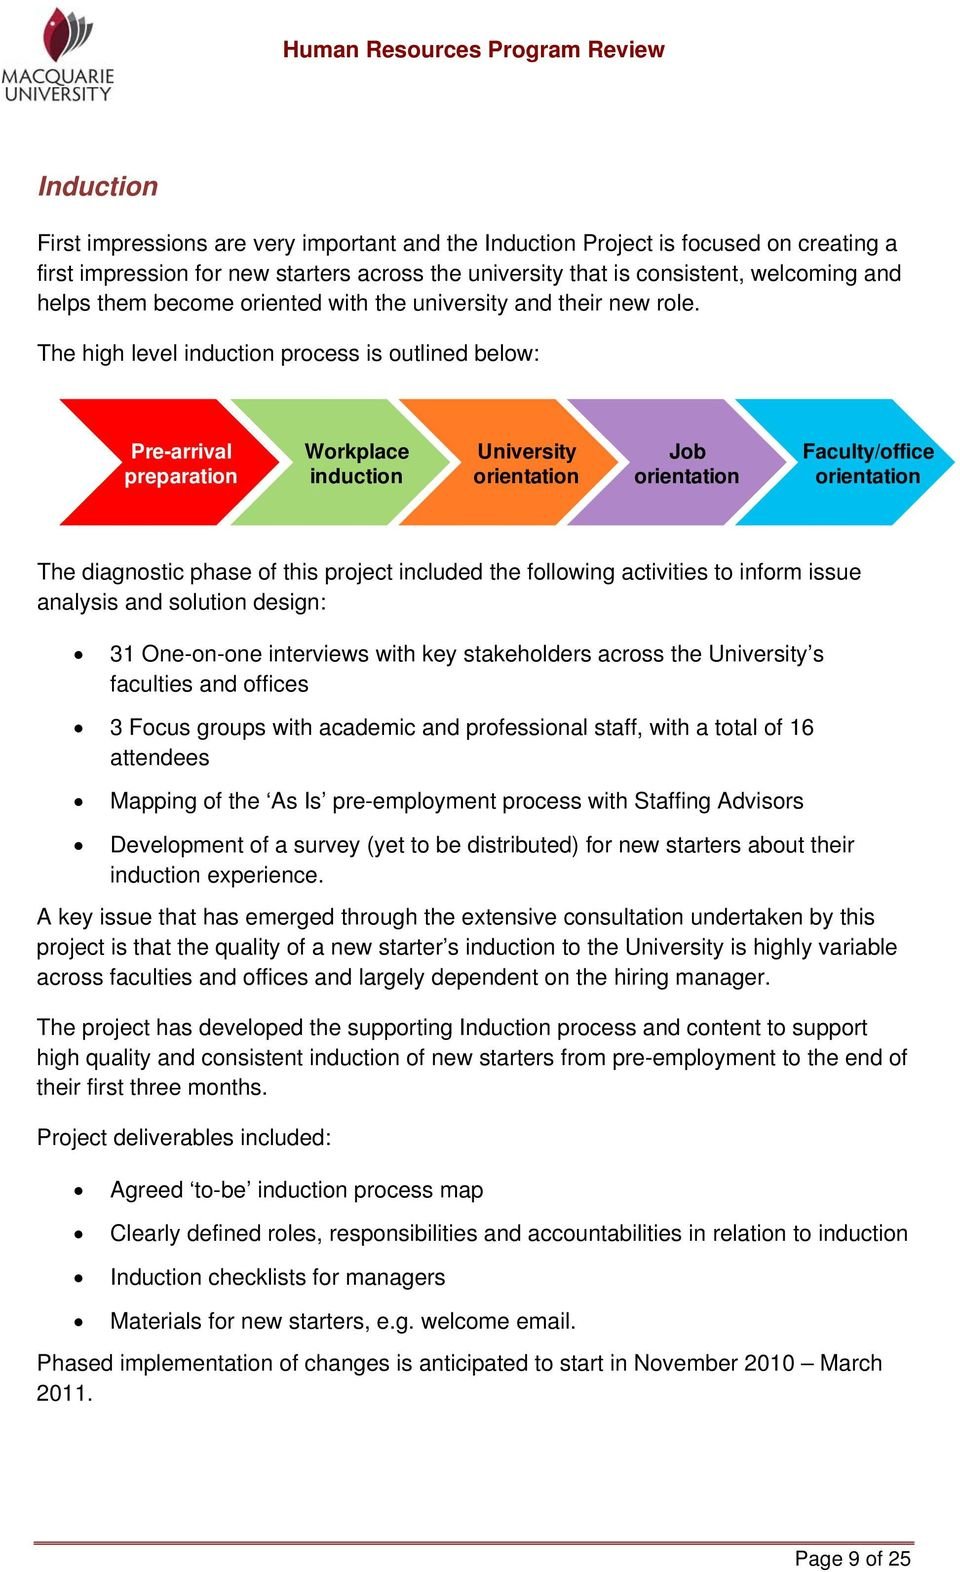 The high level induction process is outlined below: Pre-arrival preparation Workplace induction University orientation Job orientation Faculty/office orientation The diagnostic phase of this project